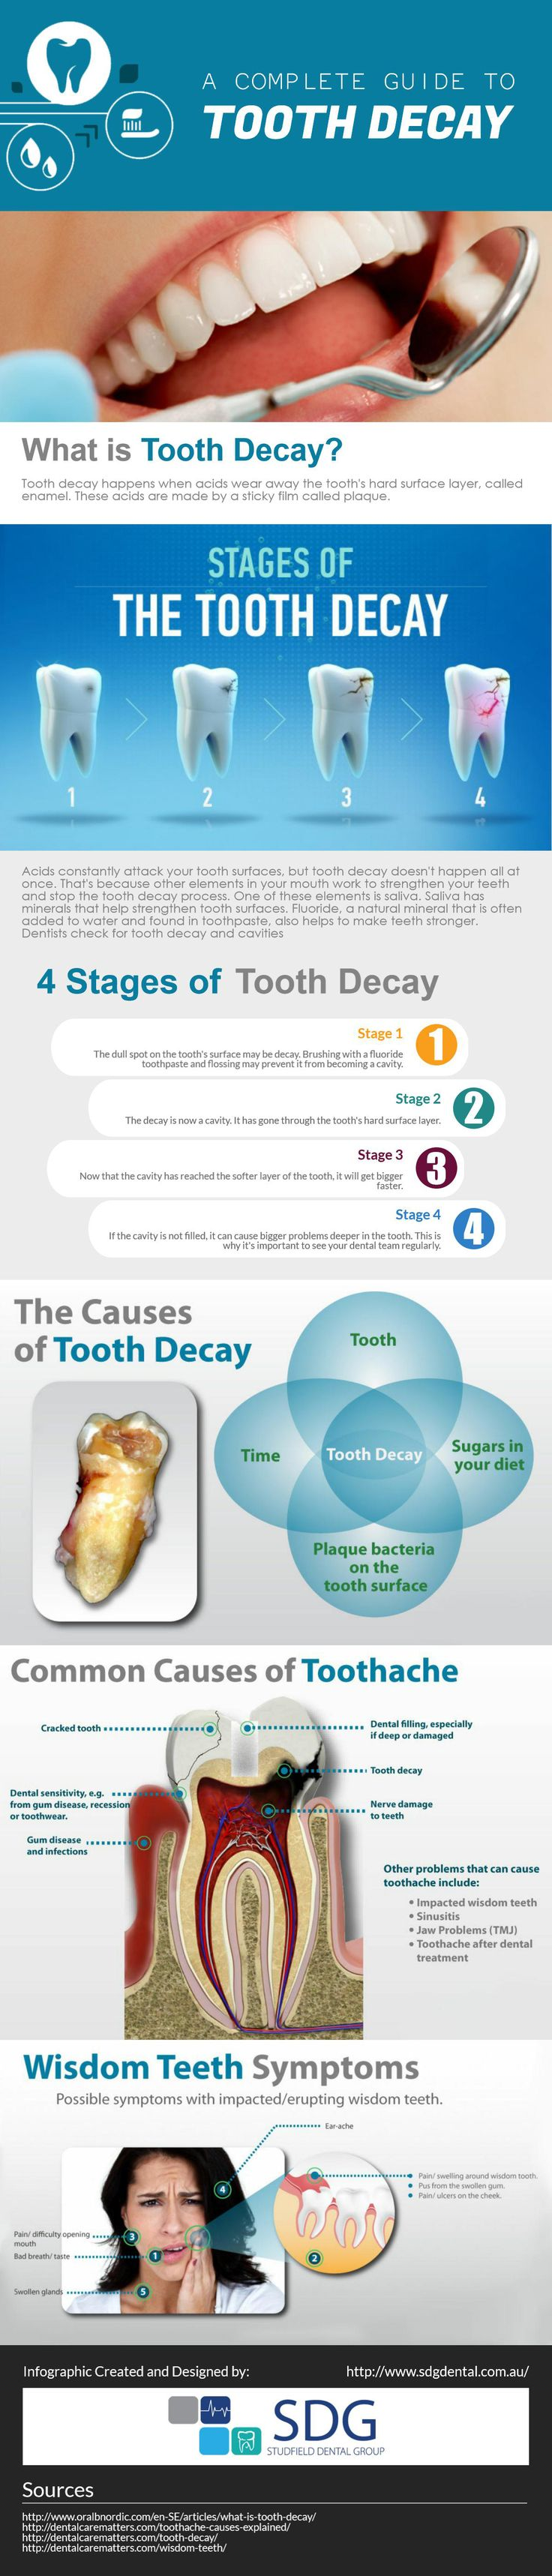 Tooth Decay is the most common problem in today's life. There in a busy life, no one has such time to care his teeth properly. The following dental infographic cover a complete guide to tooth decay including what is tooth decay? 4 stages of tooth decay, the common causes of tooth decay, some essential oral health tips and advice on how to prevent tooth decay.